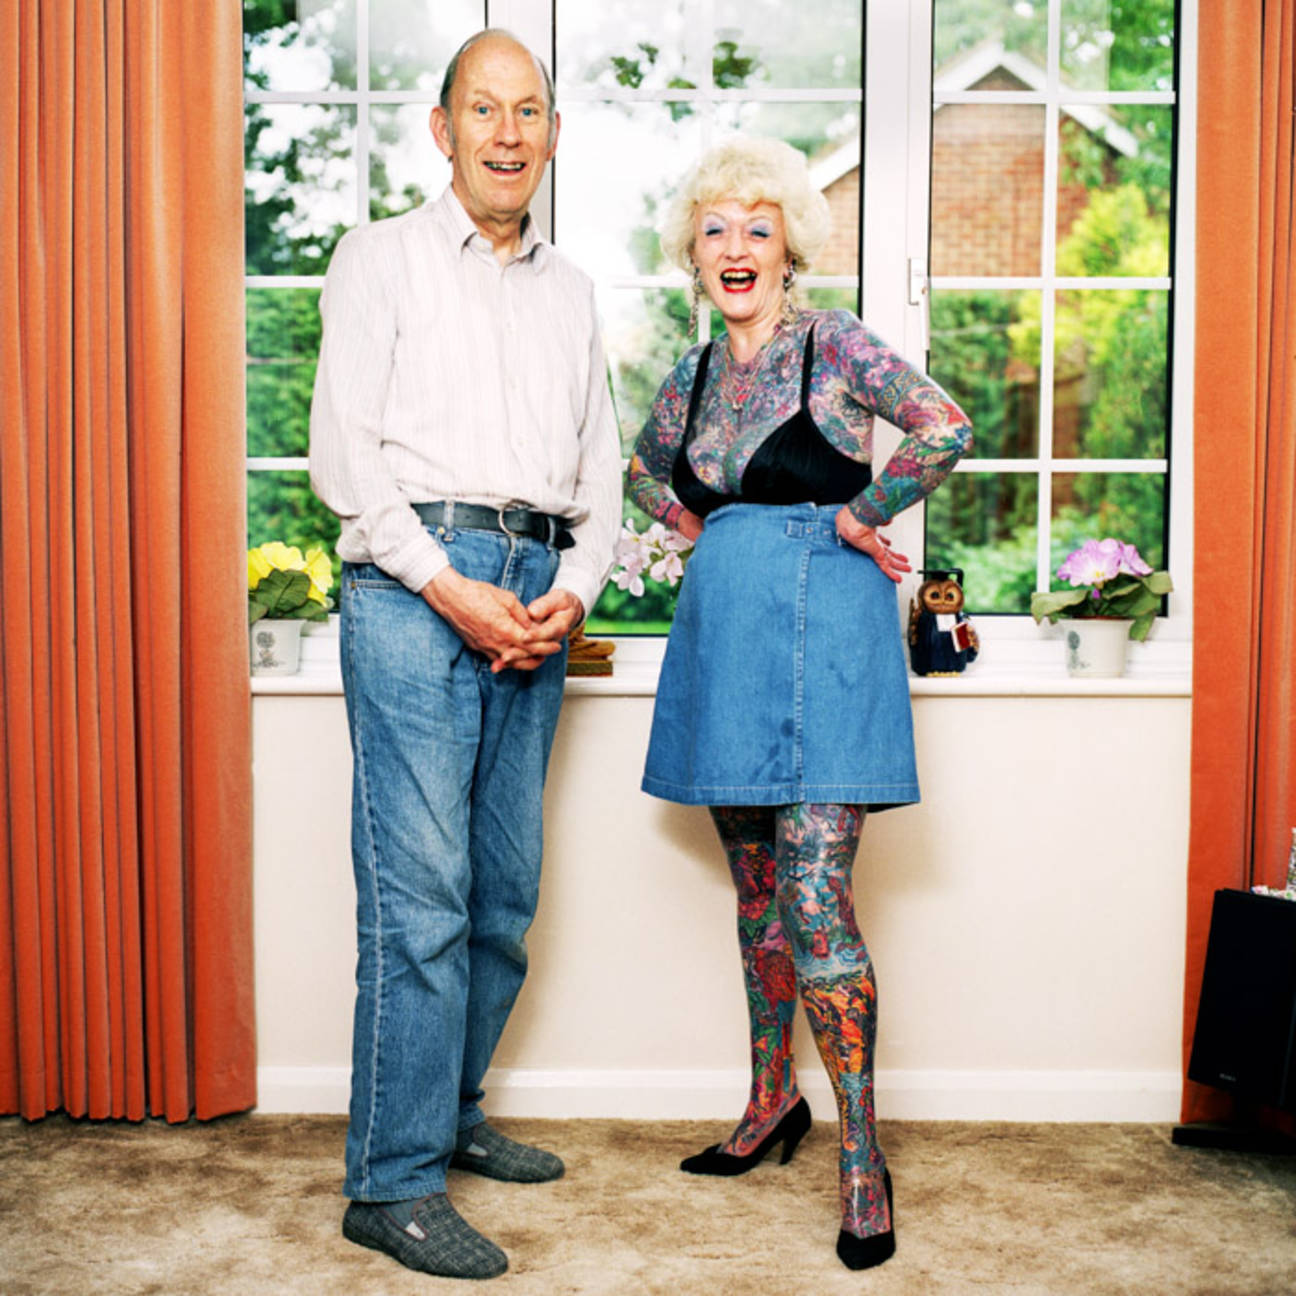 Aging with style - The most badass grandparents of Great Britain